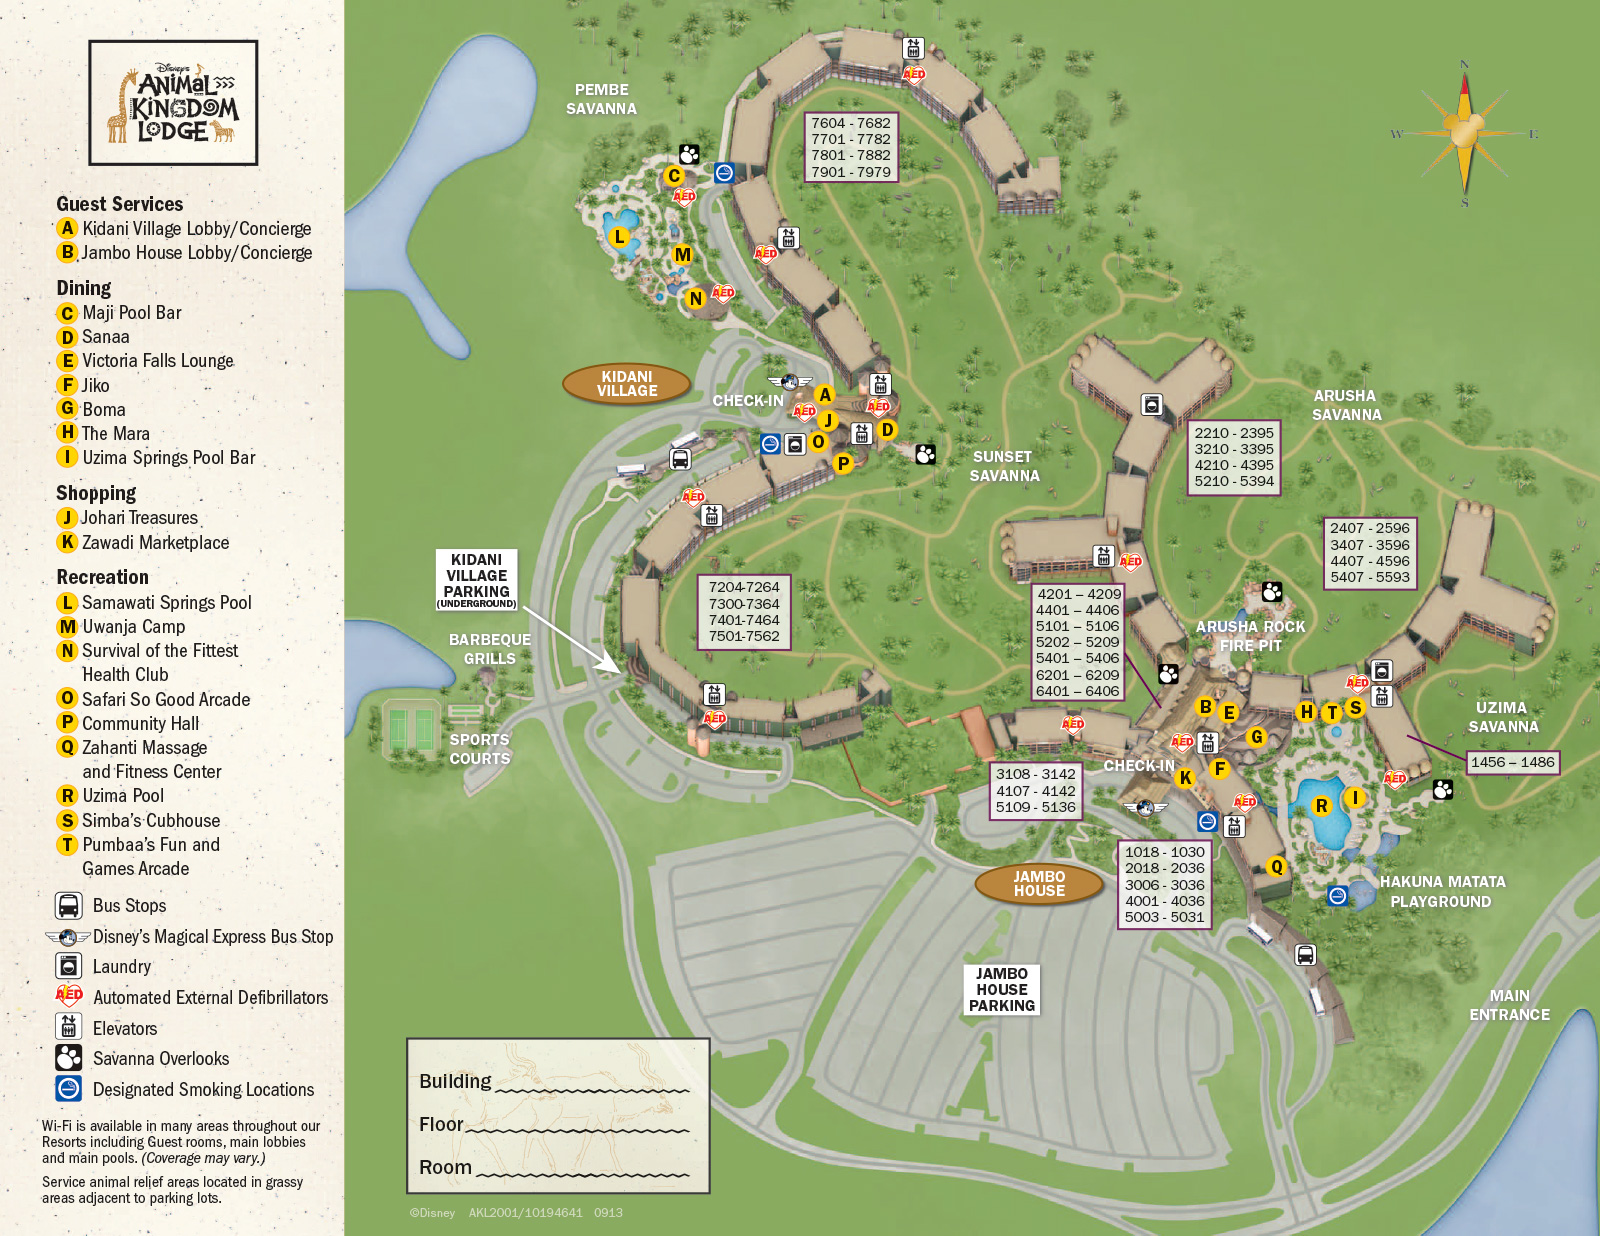 2013 Animal Kingdom Lodge Guide Map Photo 1 Of 1